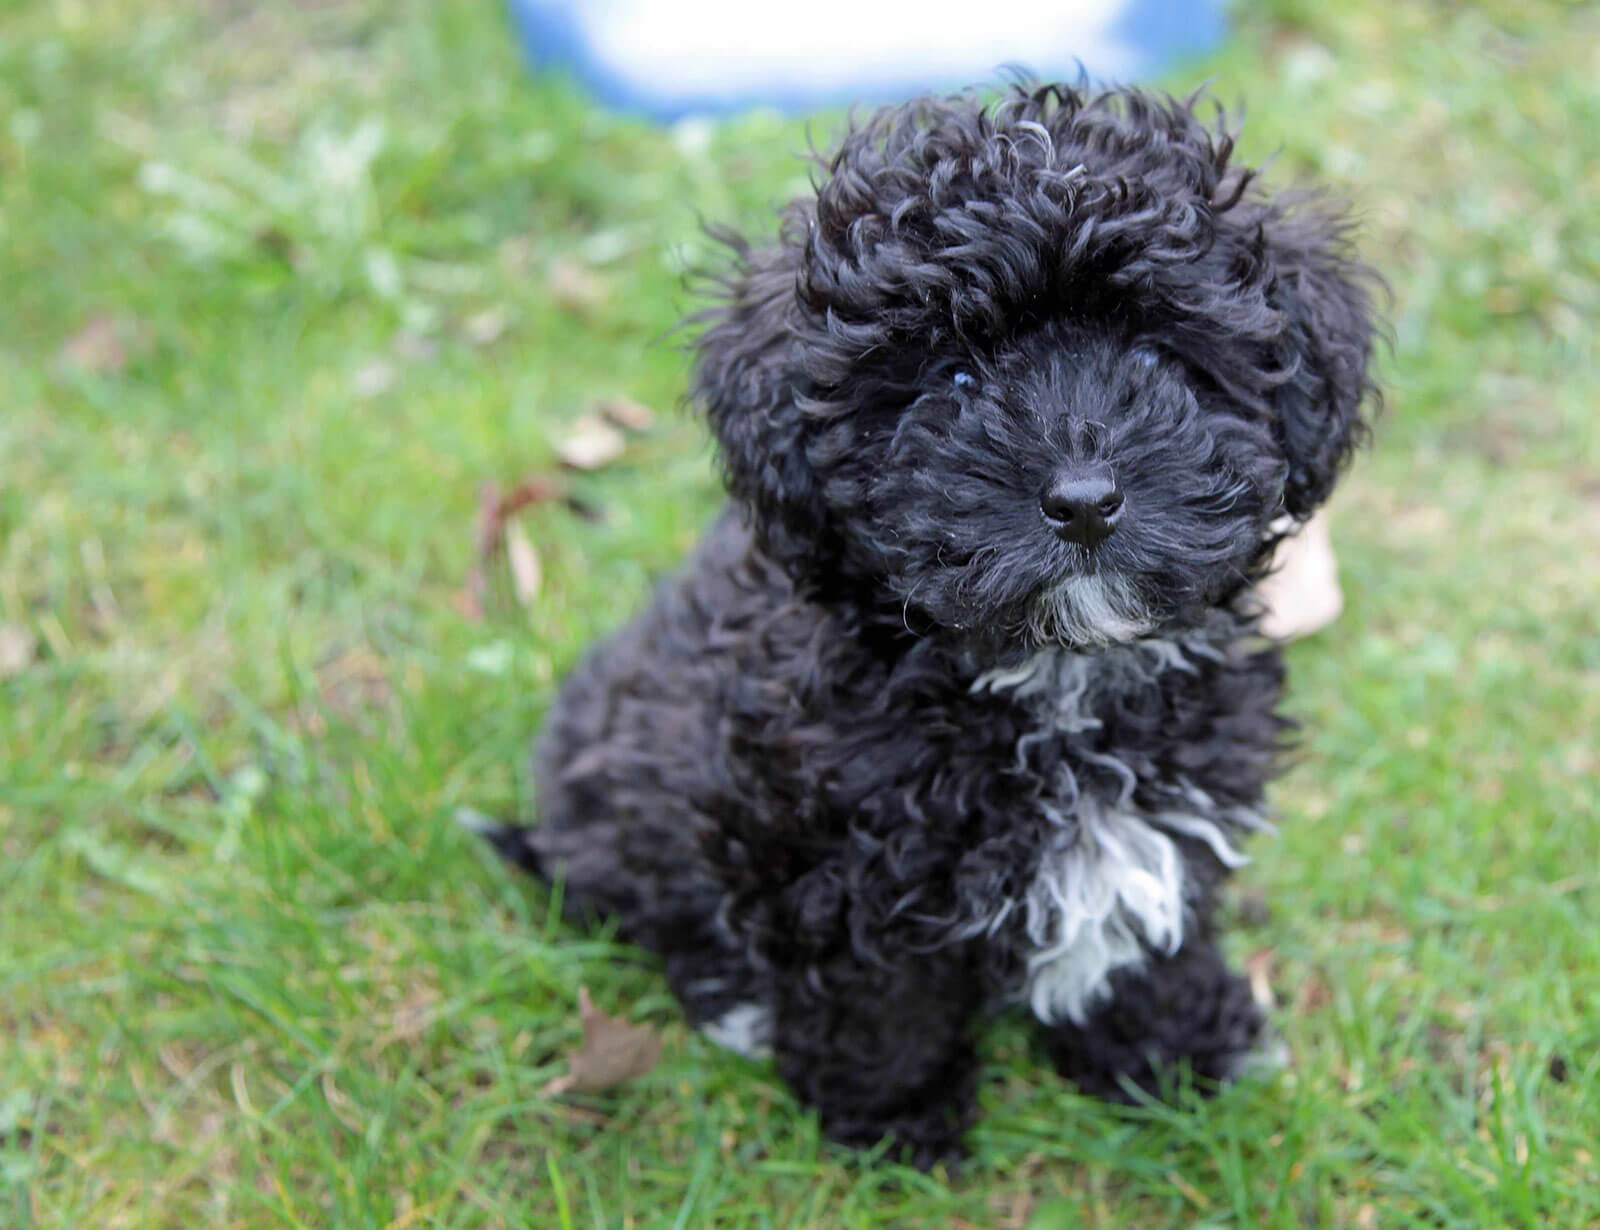 Small Black Dog Breeds With Curly Hair